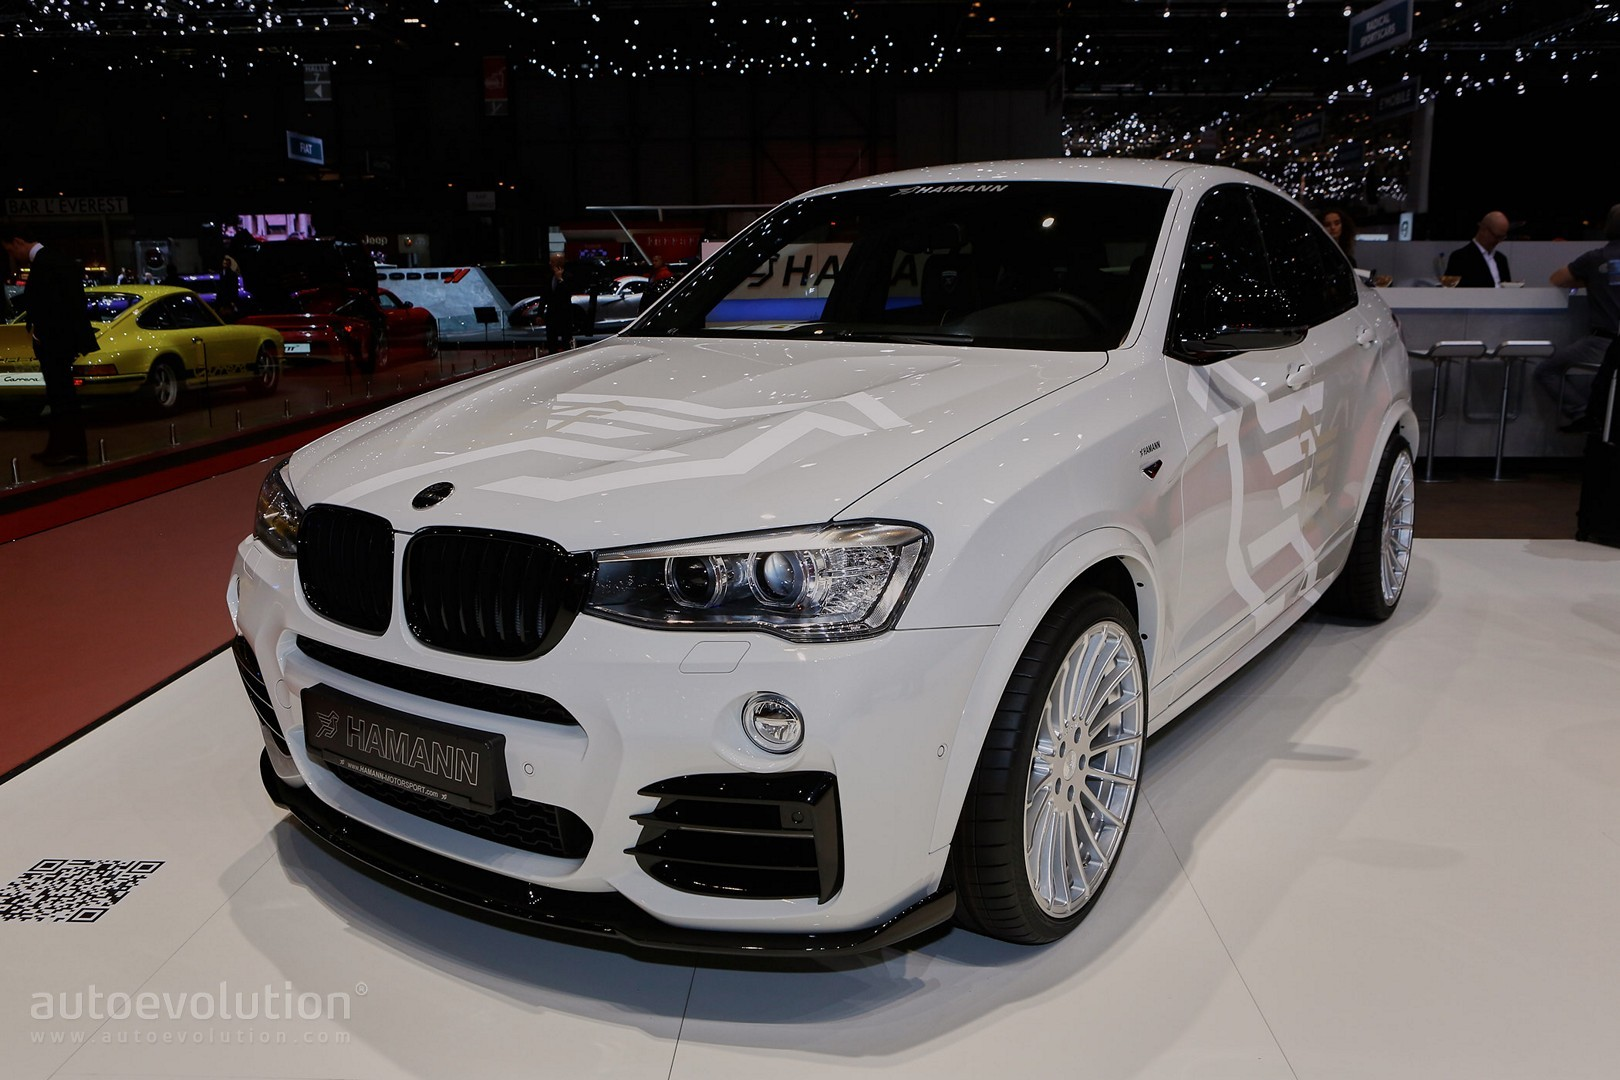 Hamann Is All About Tuning Bmw And Mercedes Sports